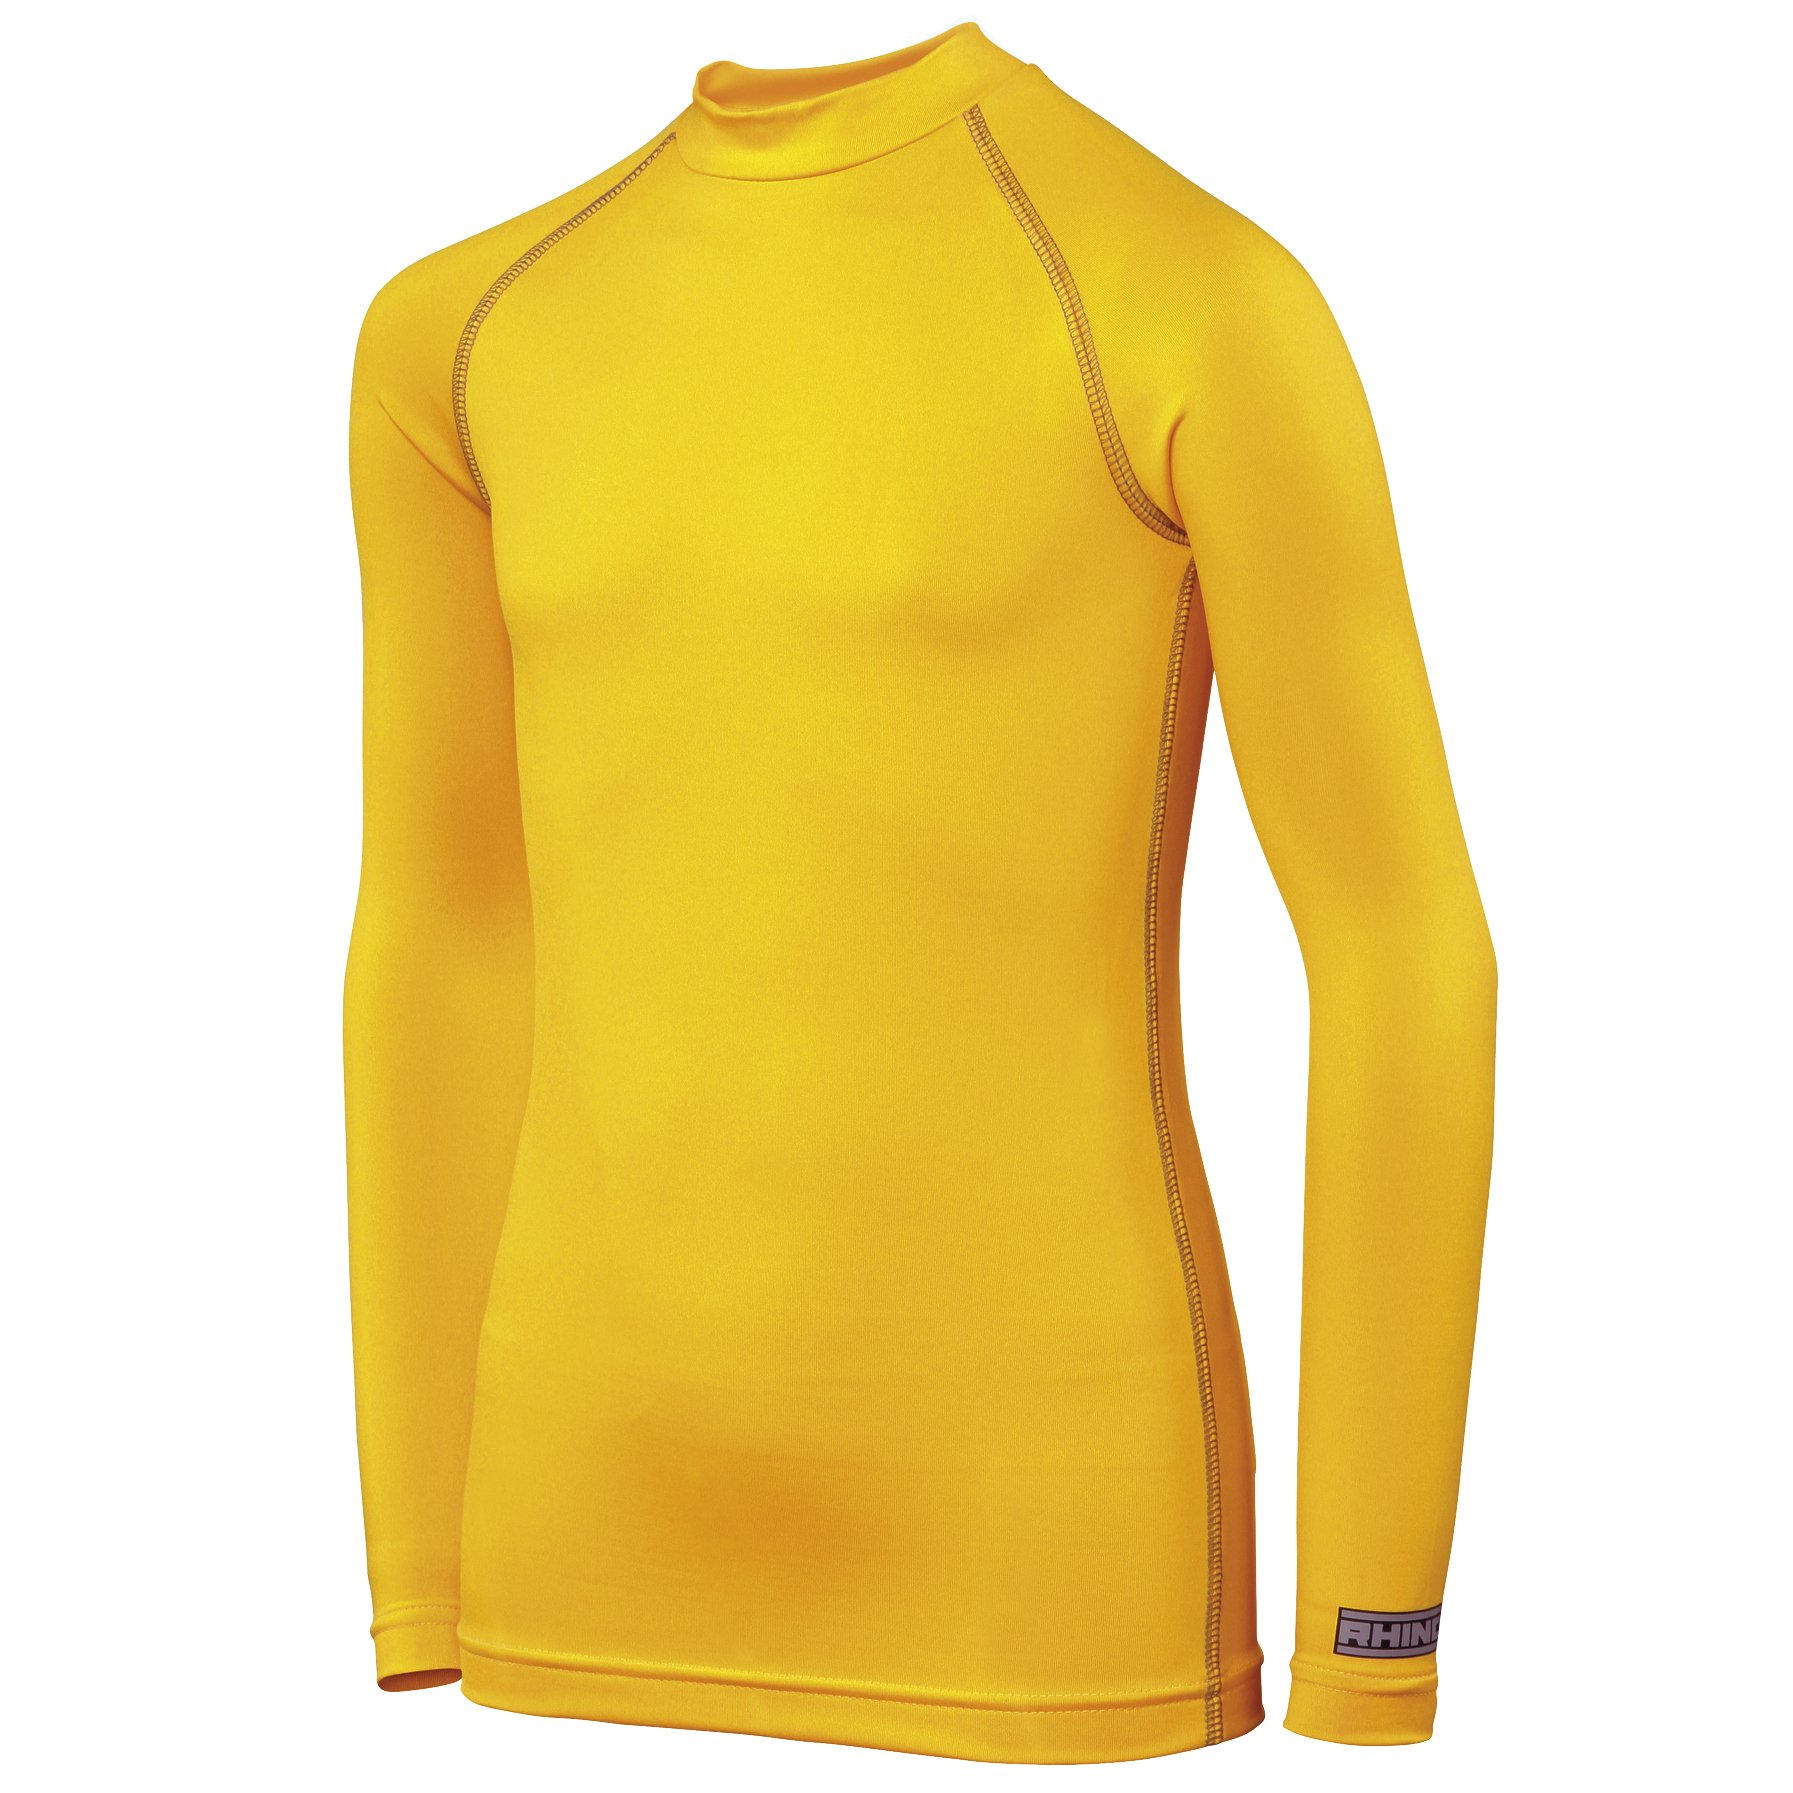 Rhino Childrens Big Boys Long Sleeve Thermal Underwear Base Layer Vest Top (LY-XLY) (Yellow) by Rhino